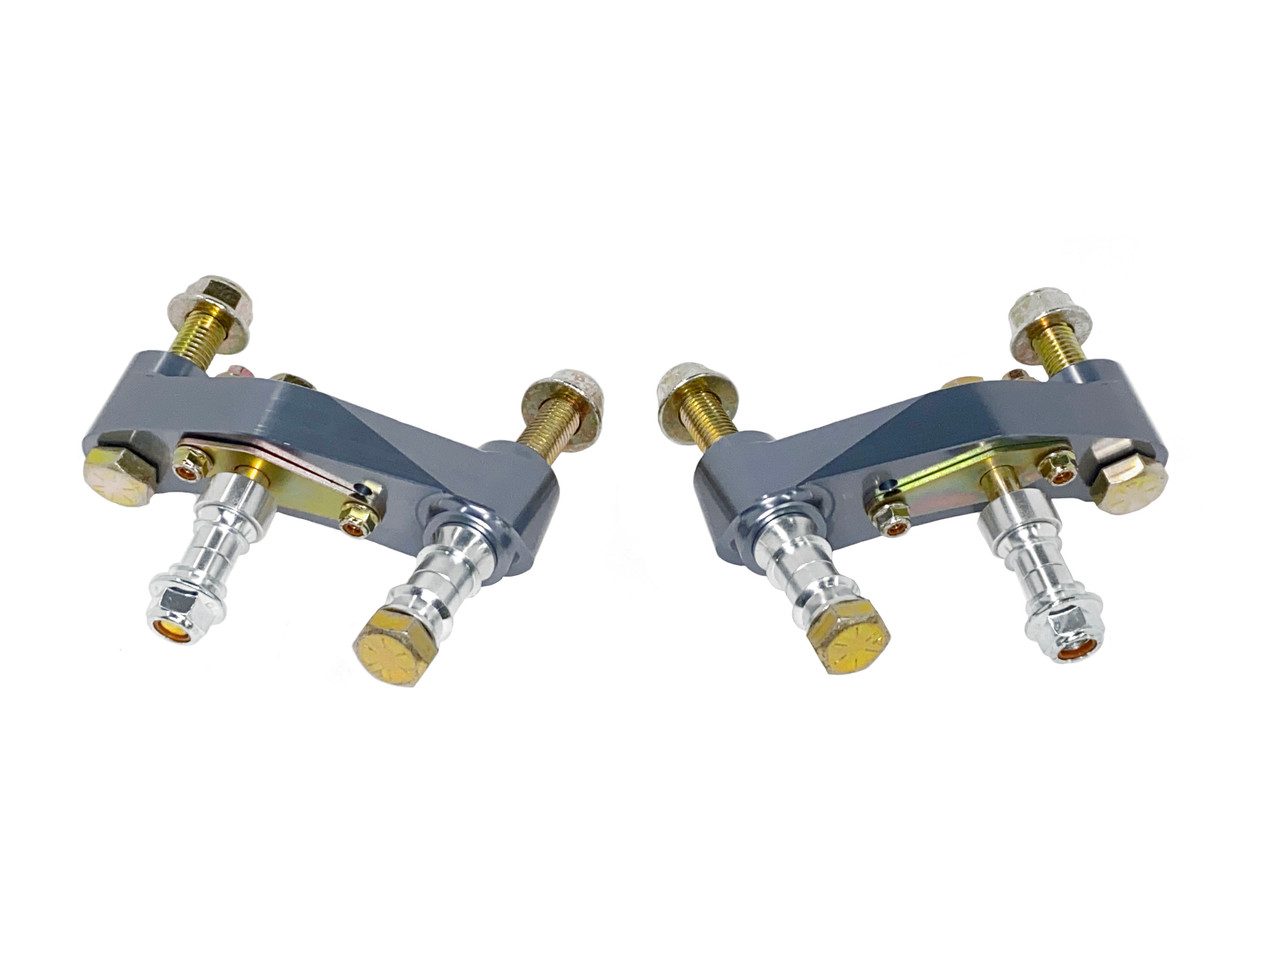 The 79-04 Mustang Quick Angle Adapter Kit is a great option for any 79-04 Mustang as long as it has factory 96+ spindles.